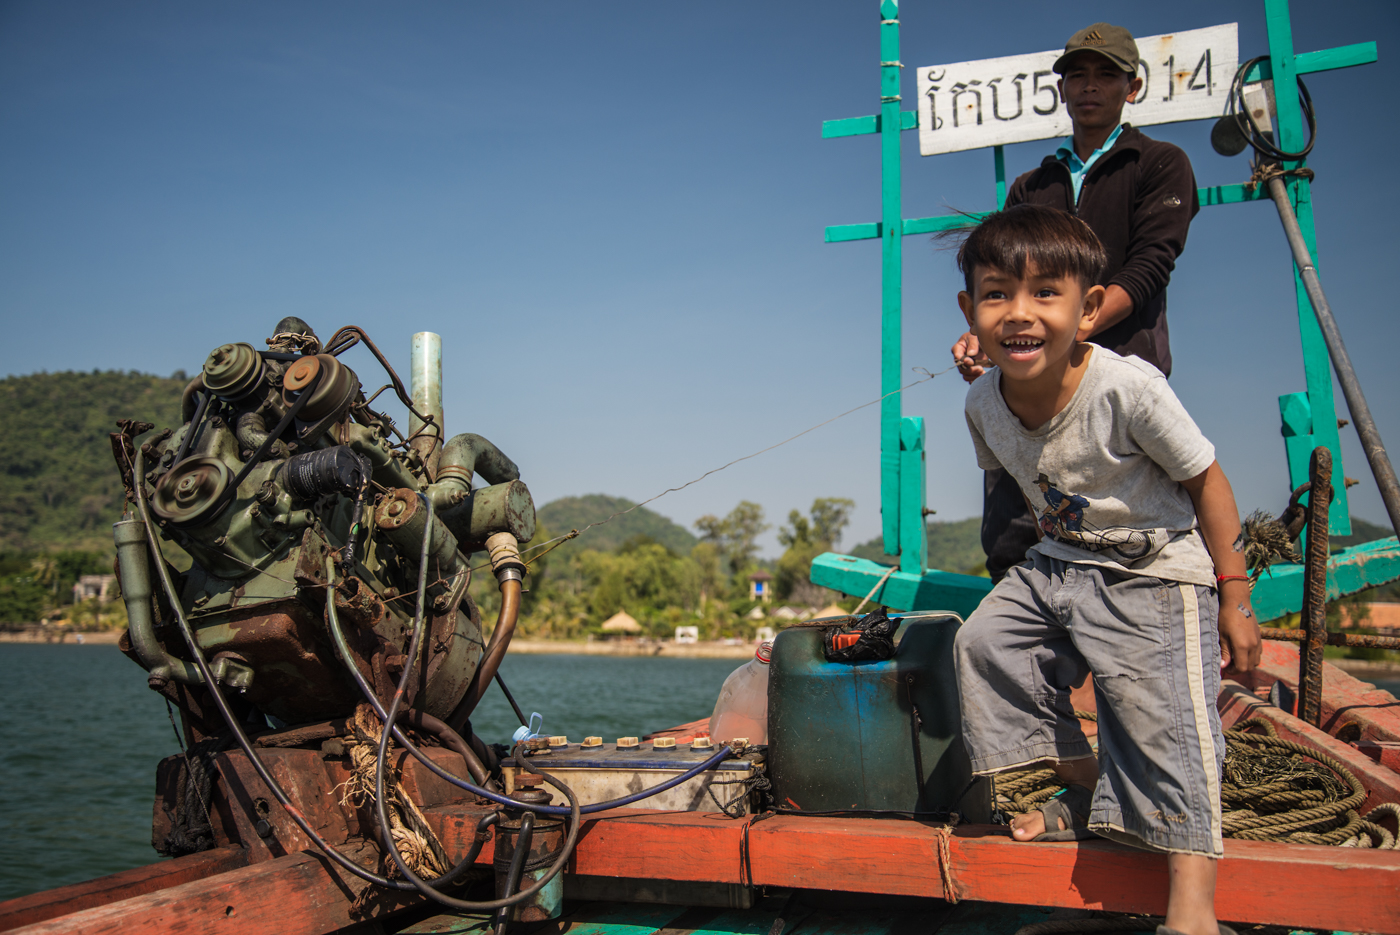 An excited young deckhand jumps around on his family's fishing boat.